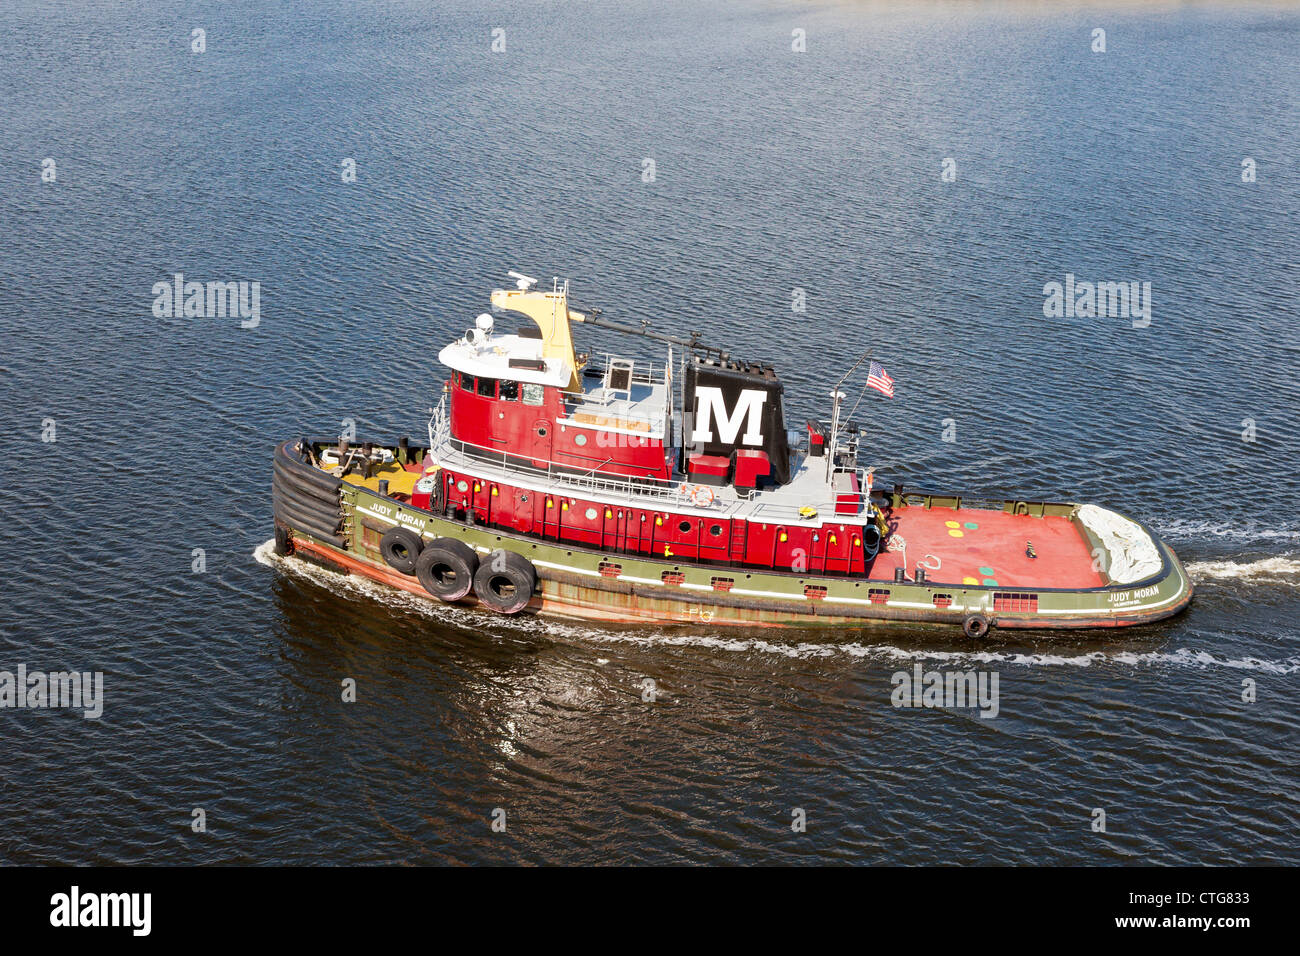 Moran Towing Stock Photos & Moran Towing Stock Images - Alamy